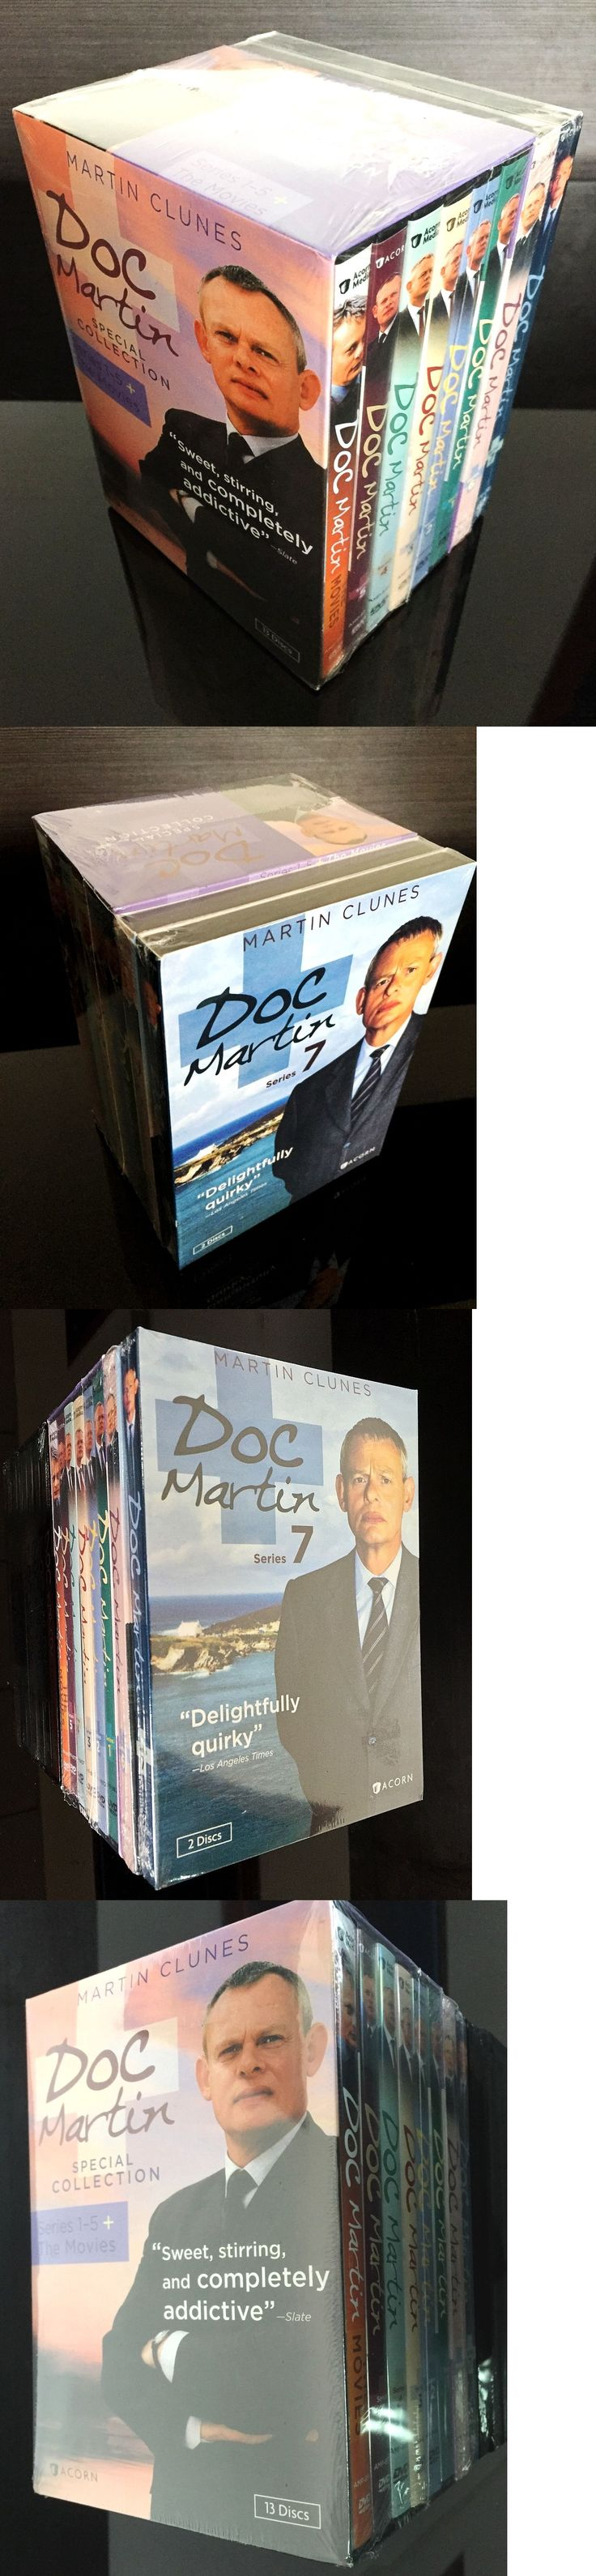 cds dvds vhs: Doc Martin Seasons 1-7 Plus Movies Complete Dvd Set Seasons 1 2 3 4 5 6 7 New -> BUY IT NOW ONLY: $34.2 on eBay!